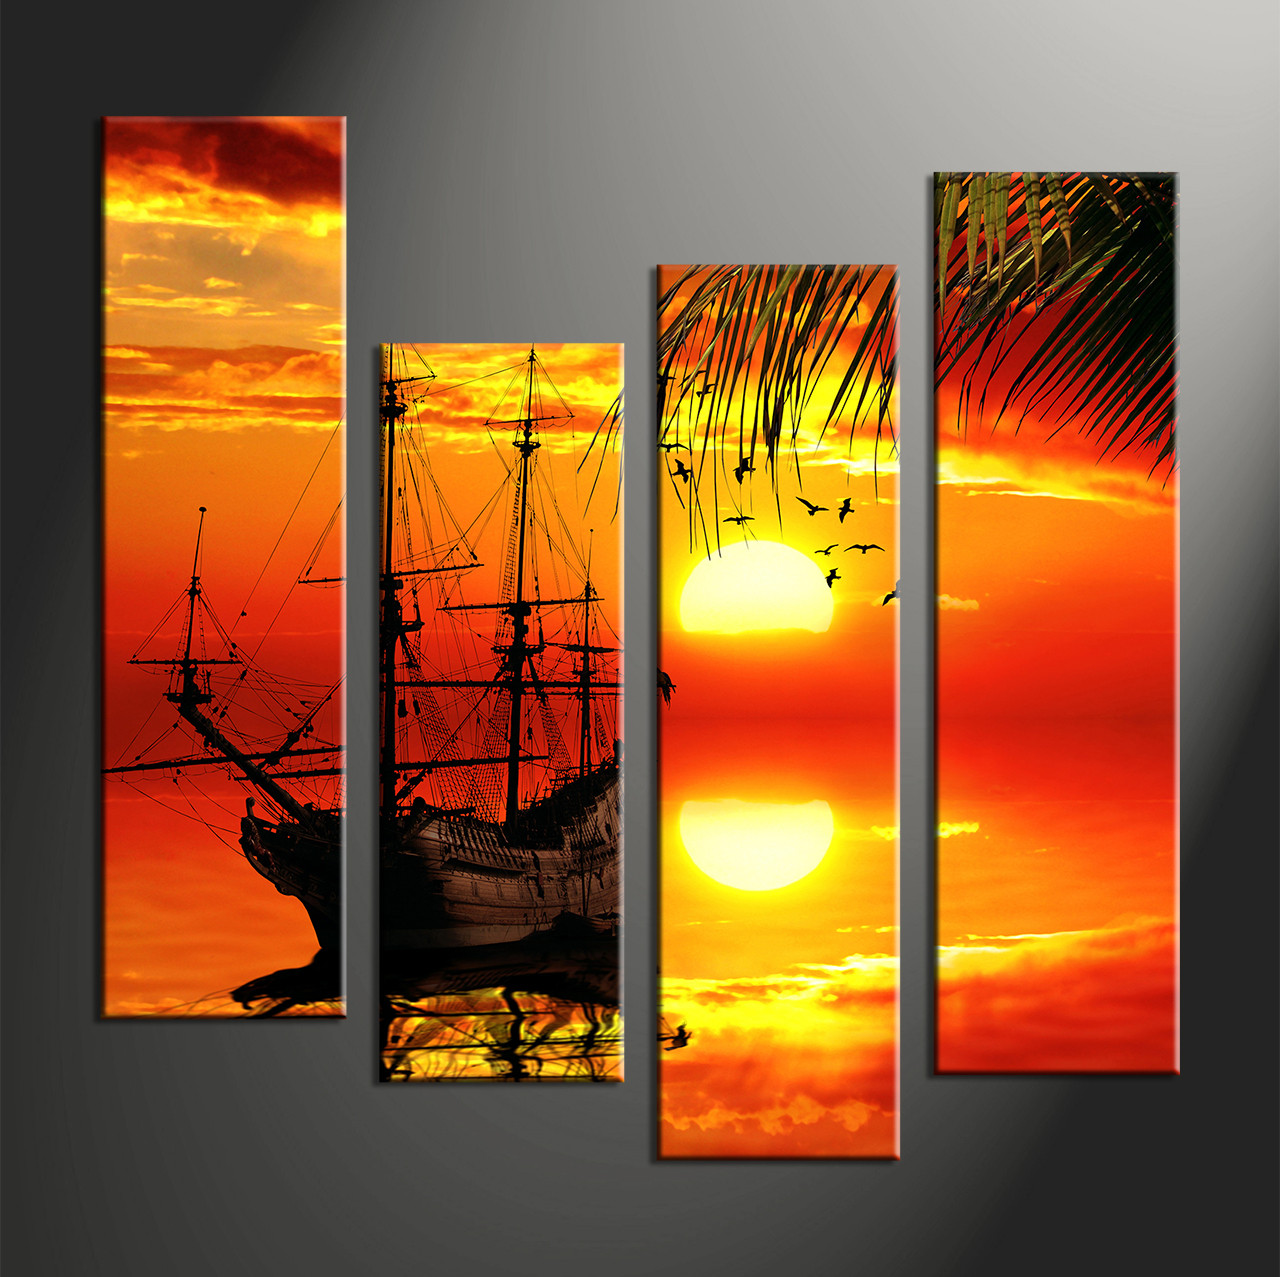 Wall decor orange beach : Piece red canvas landscape sunset wall decor